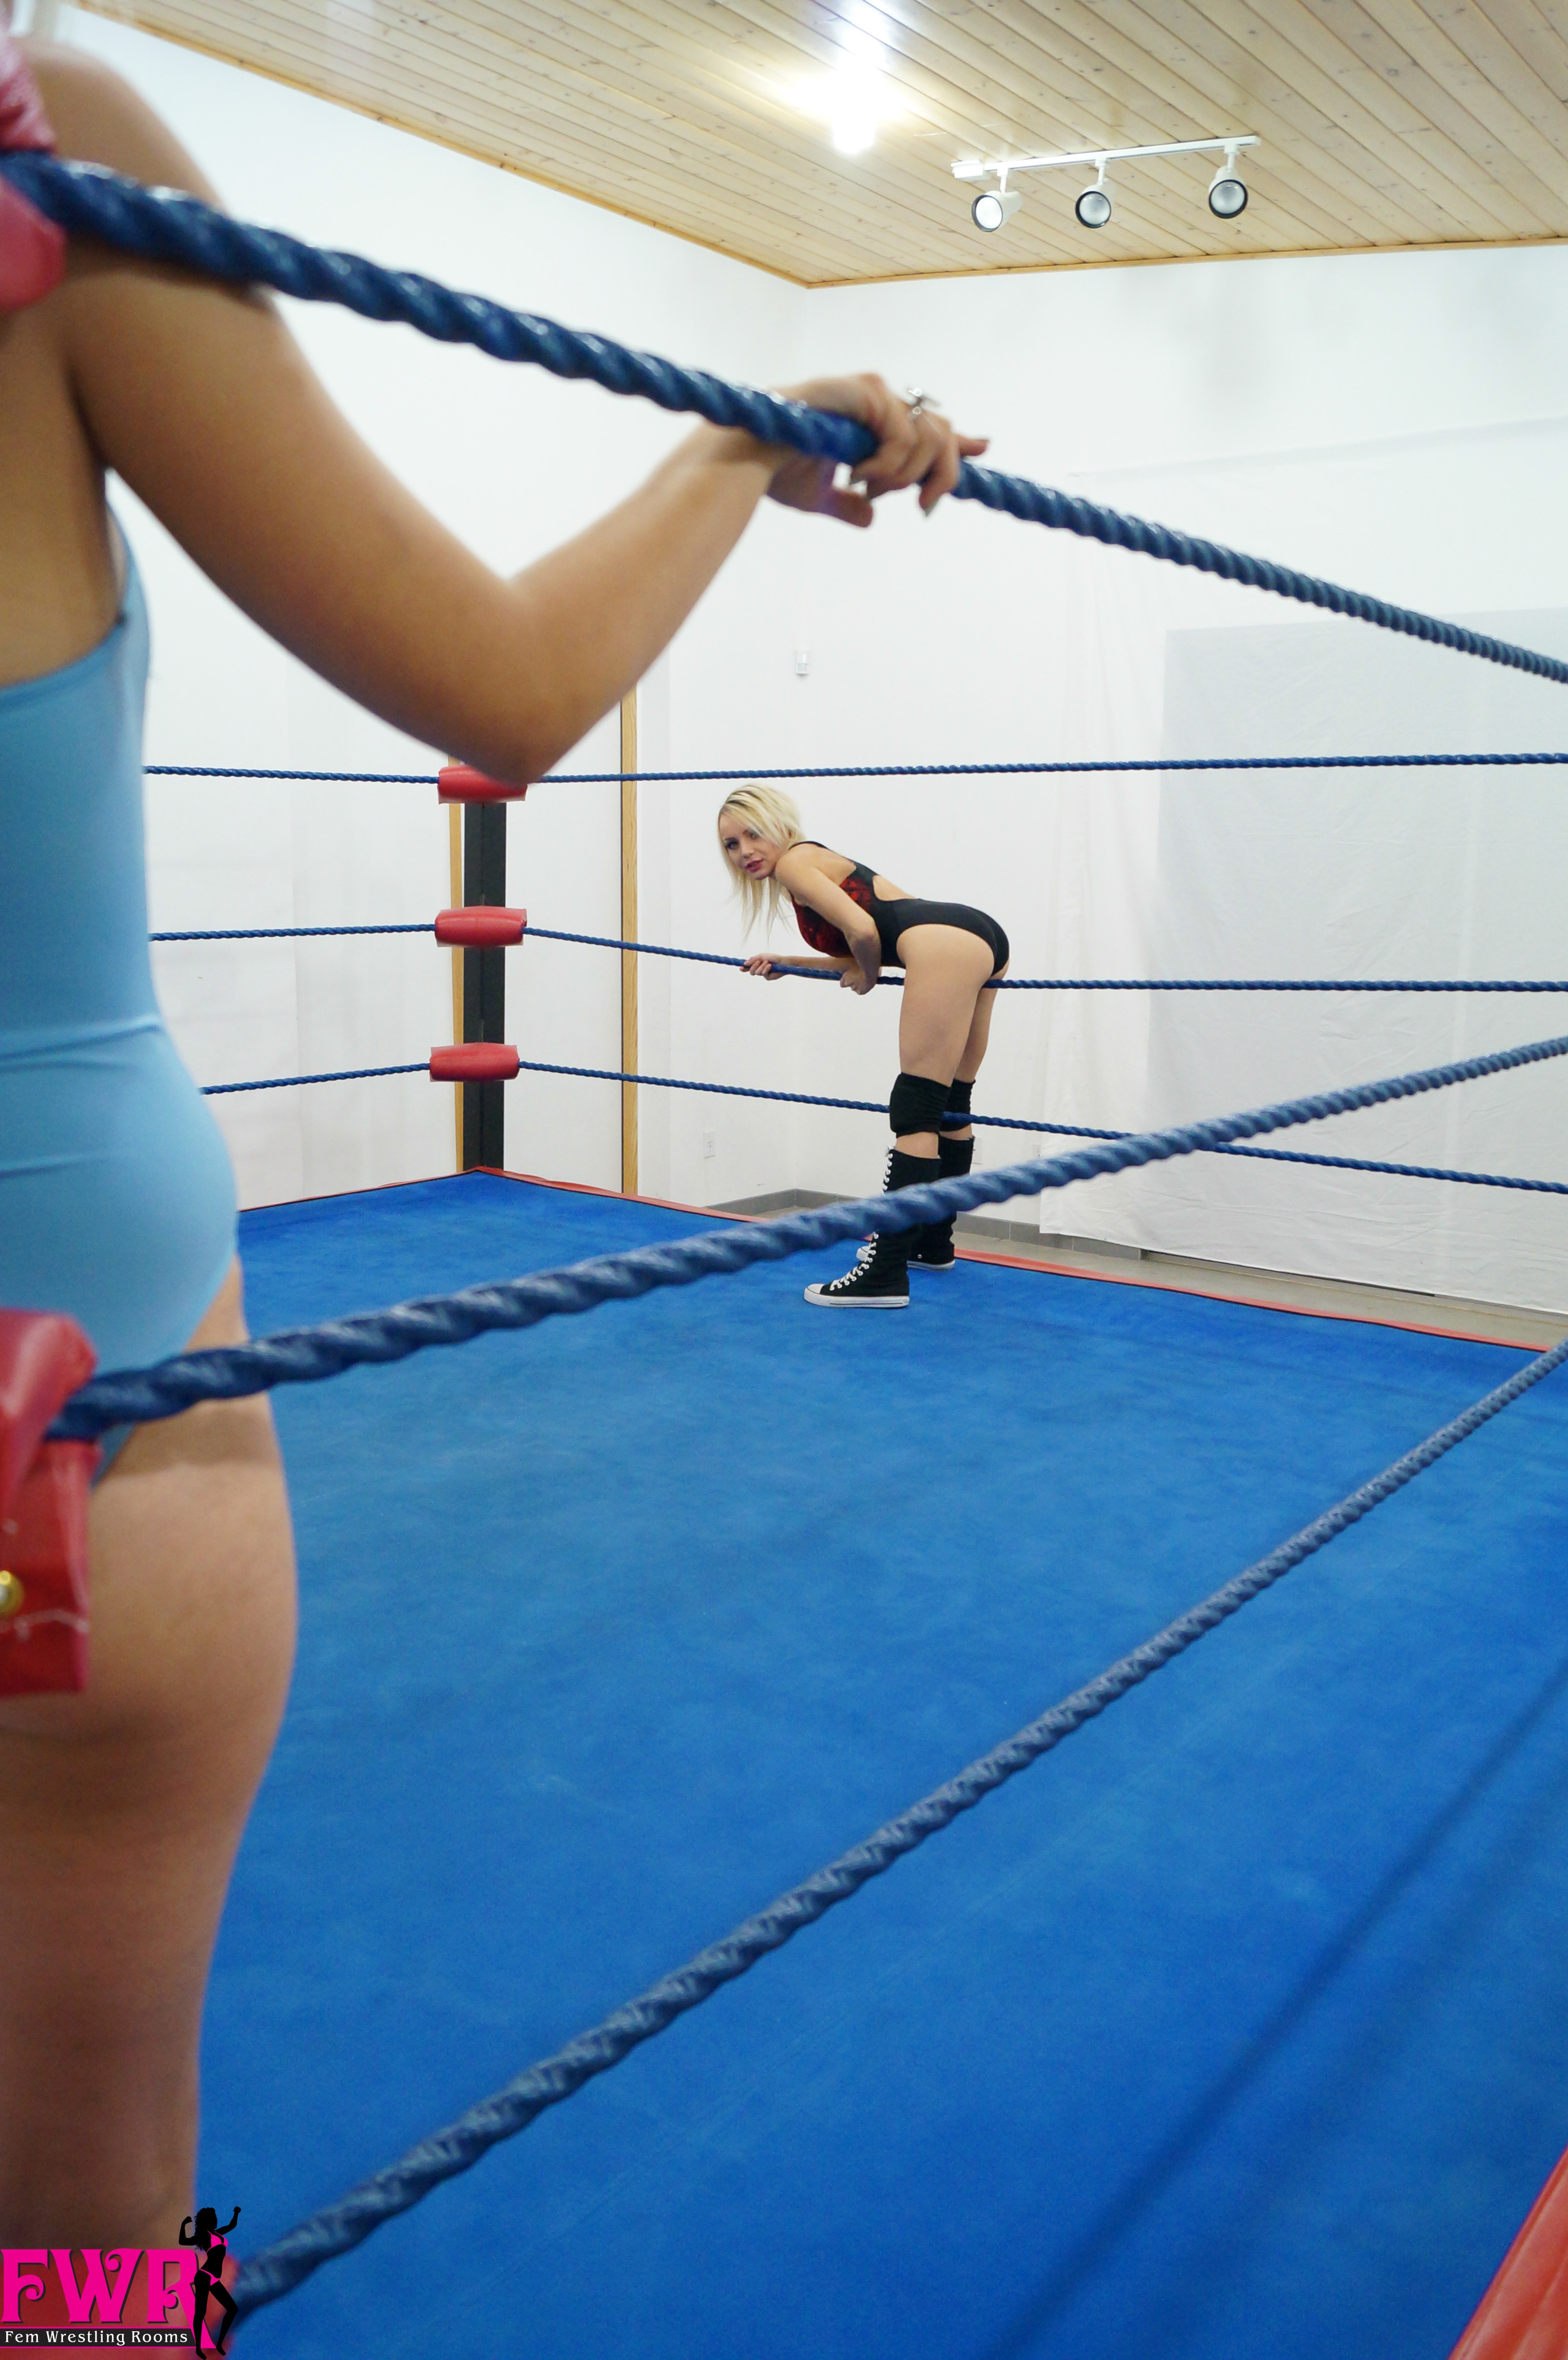 Layla S Wrestling Experience Part One Fem Wrestling Rooms